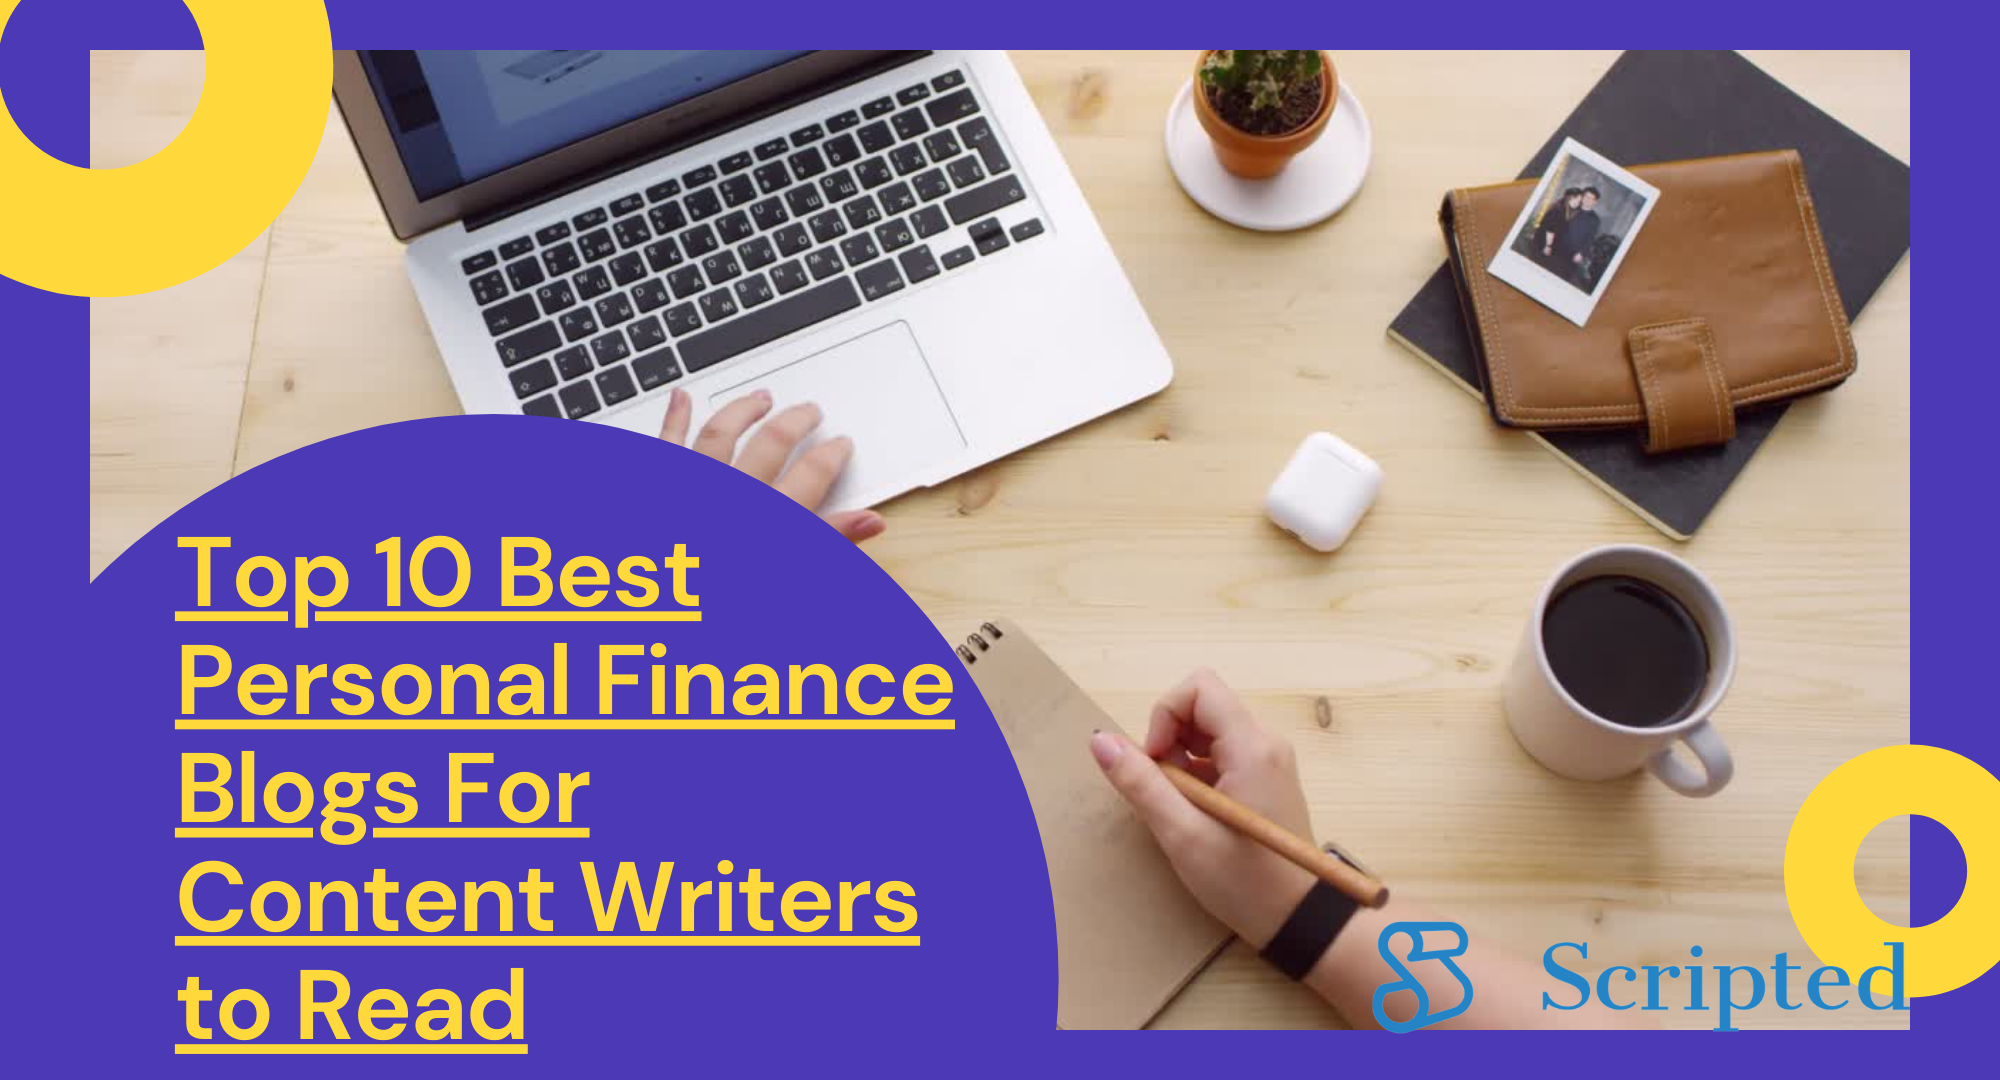 Top 10 Best Personal Finance Blogs For Content Writers to Read